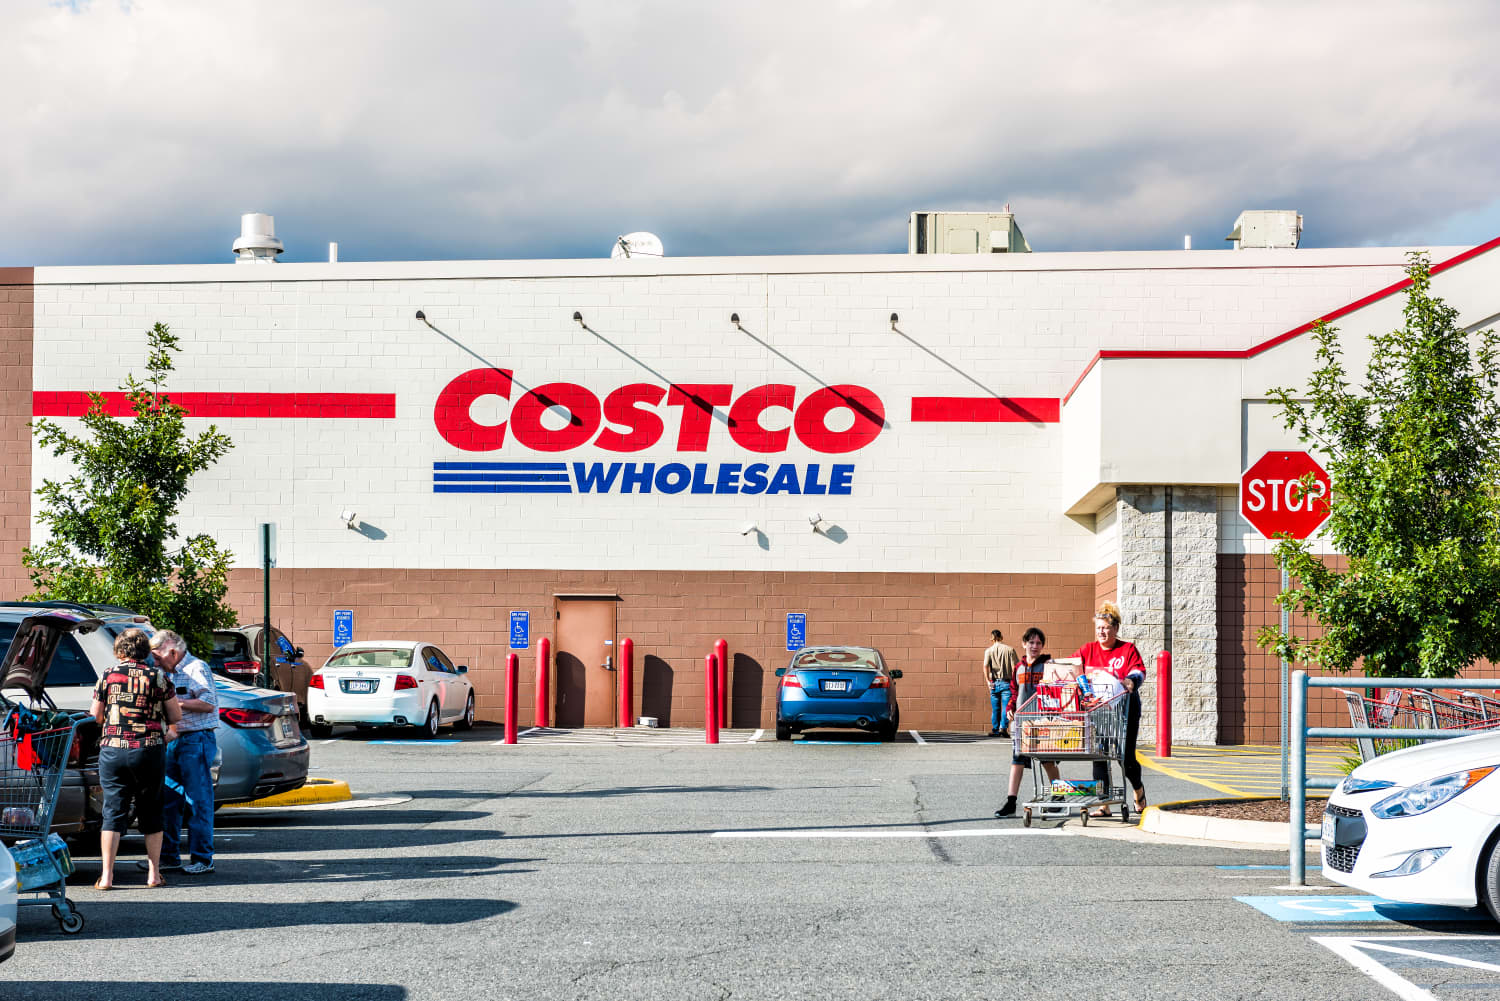 5 New-to-Me Costco Products I Tried Recently and Loved